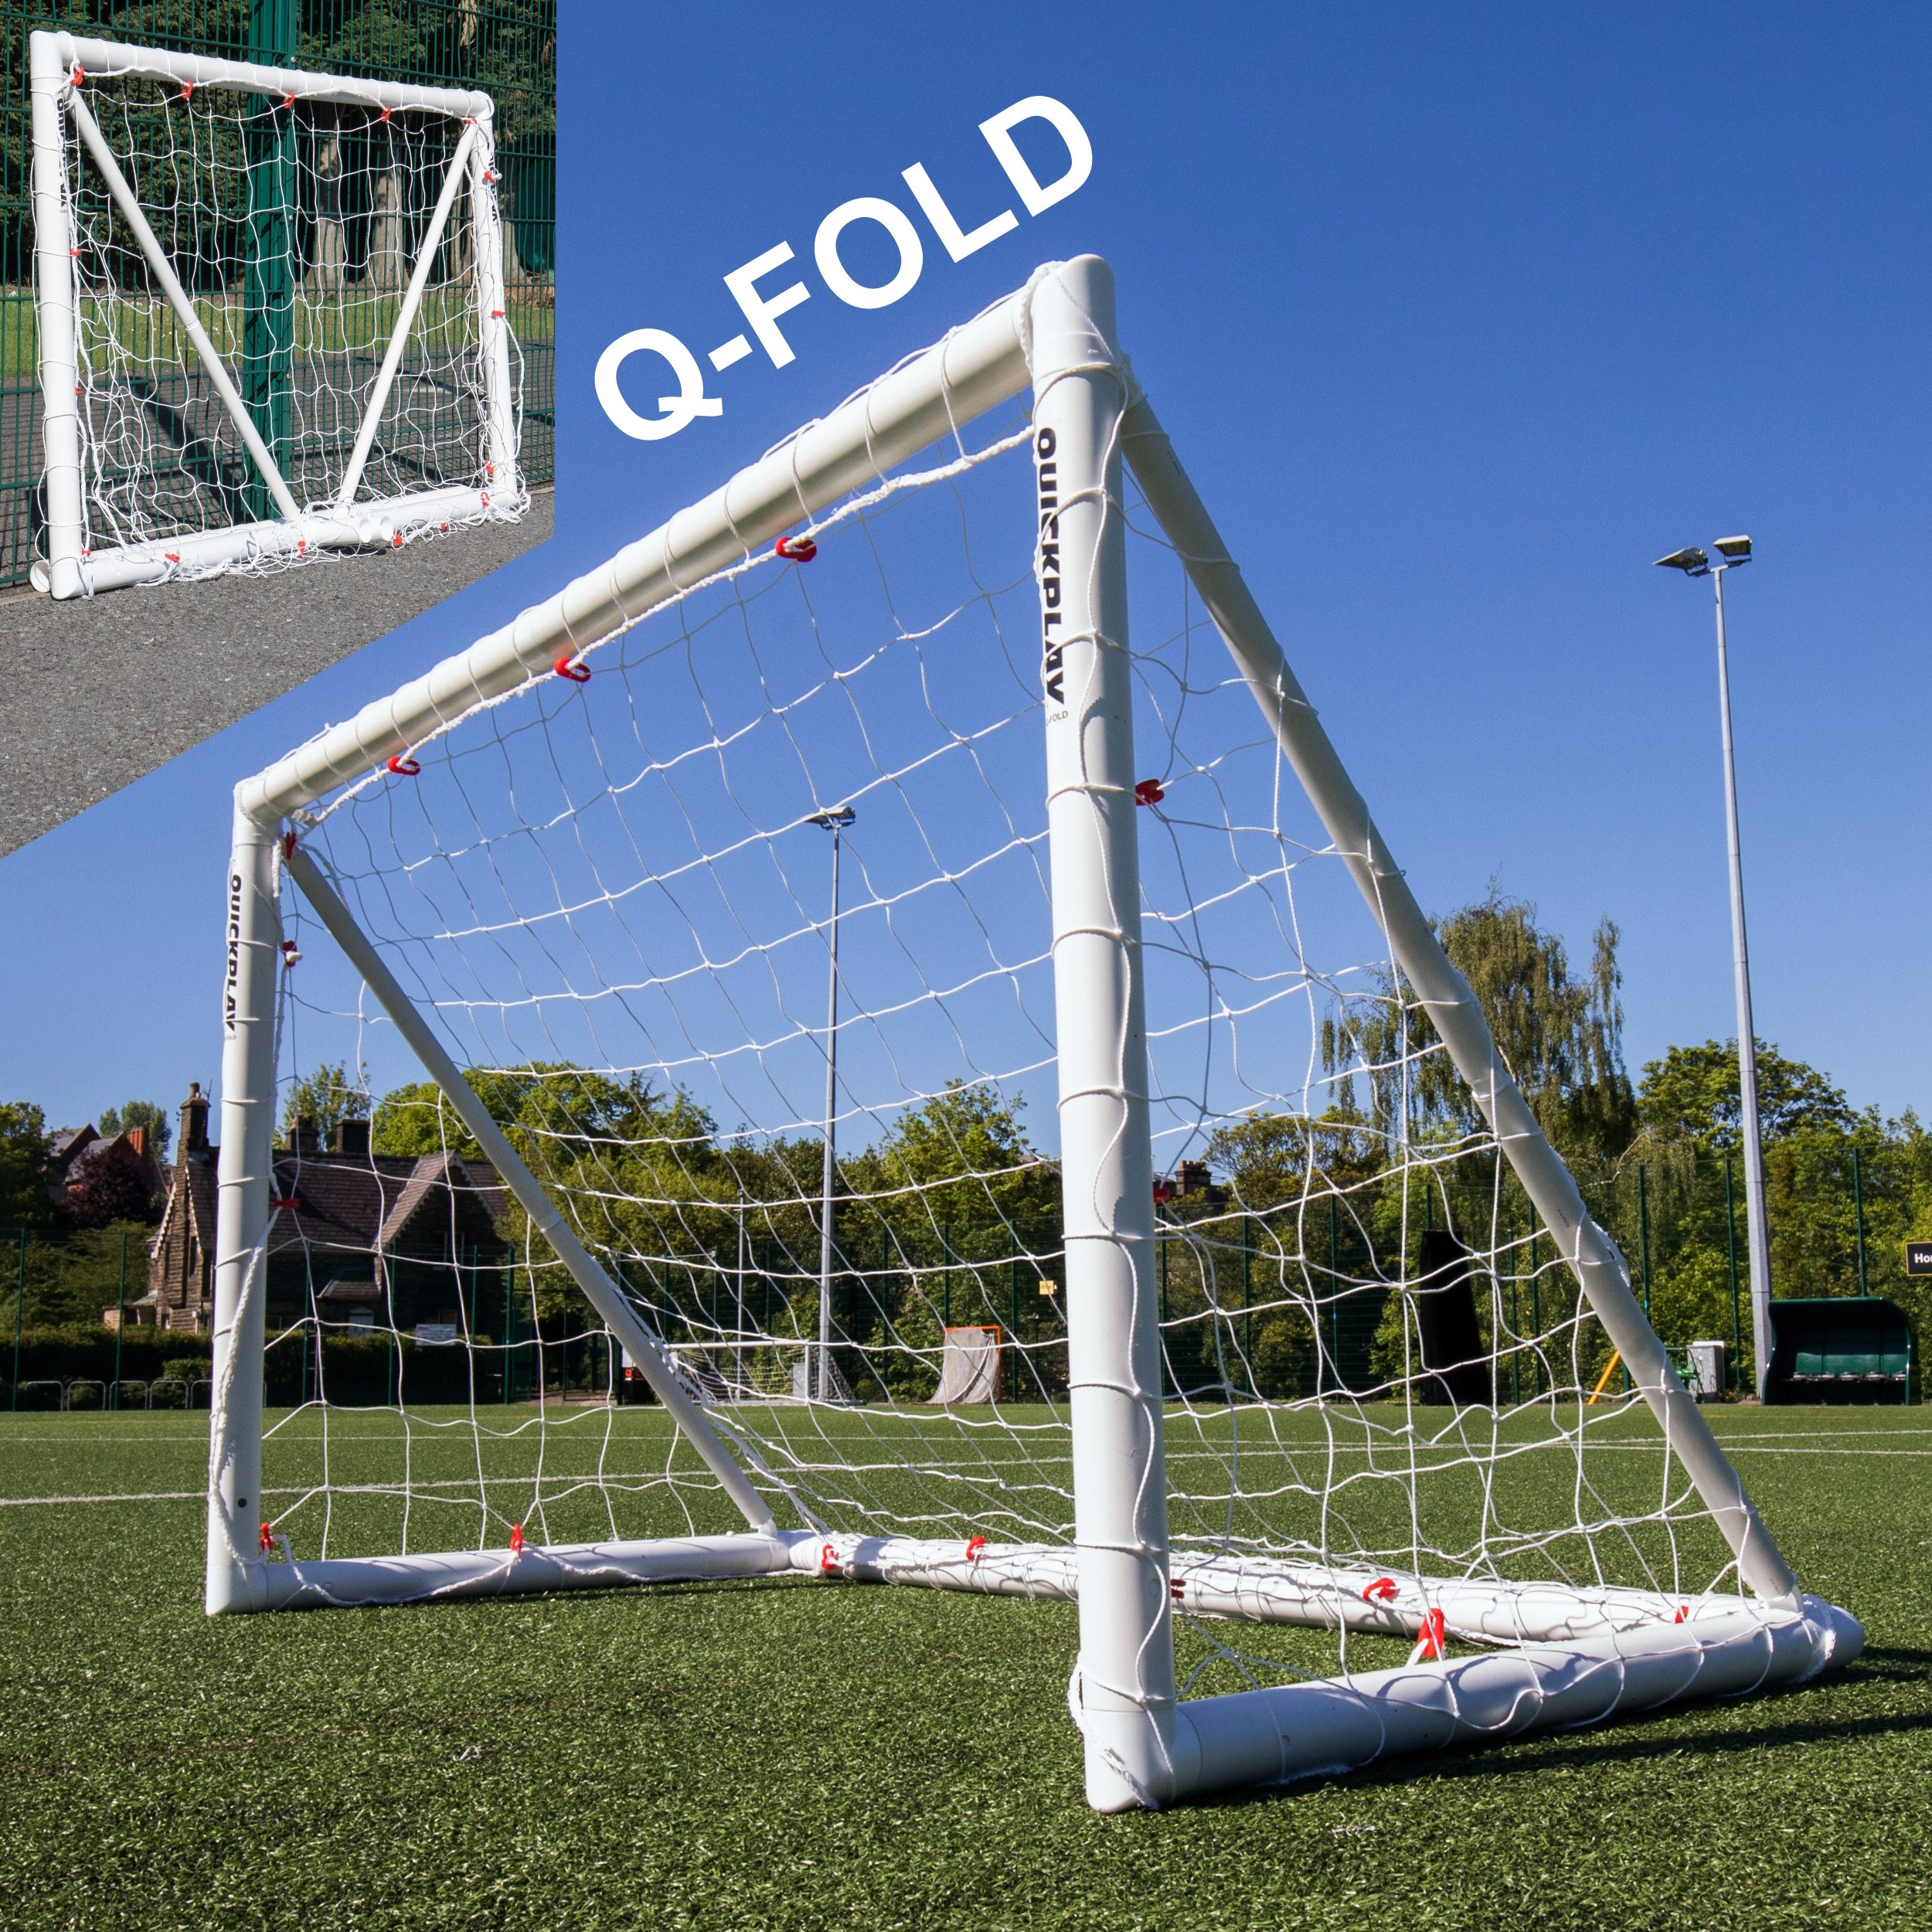 QuickPlay Q-Fold | The 30 Second Folding Soccer Goal for Backyard [Single Goal] (6x4')